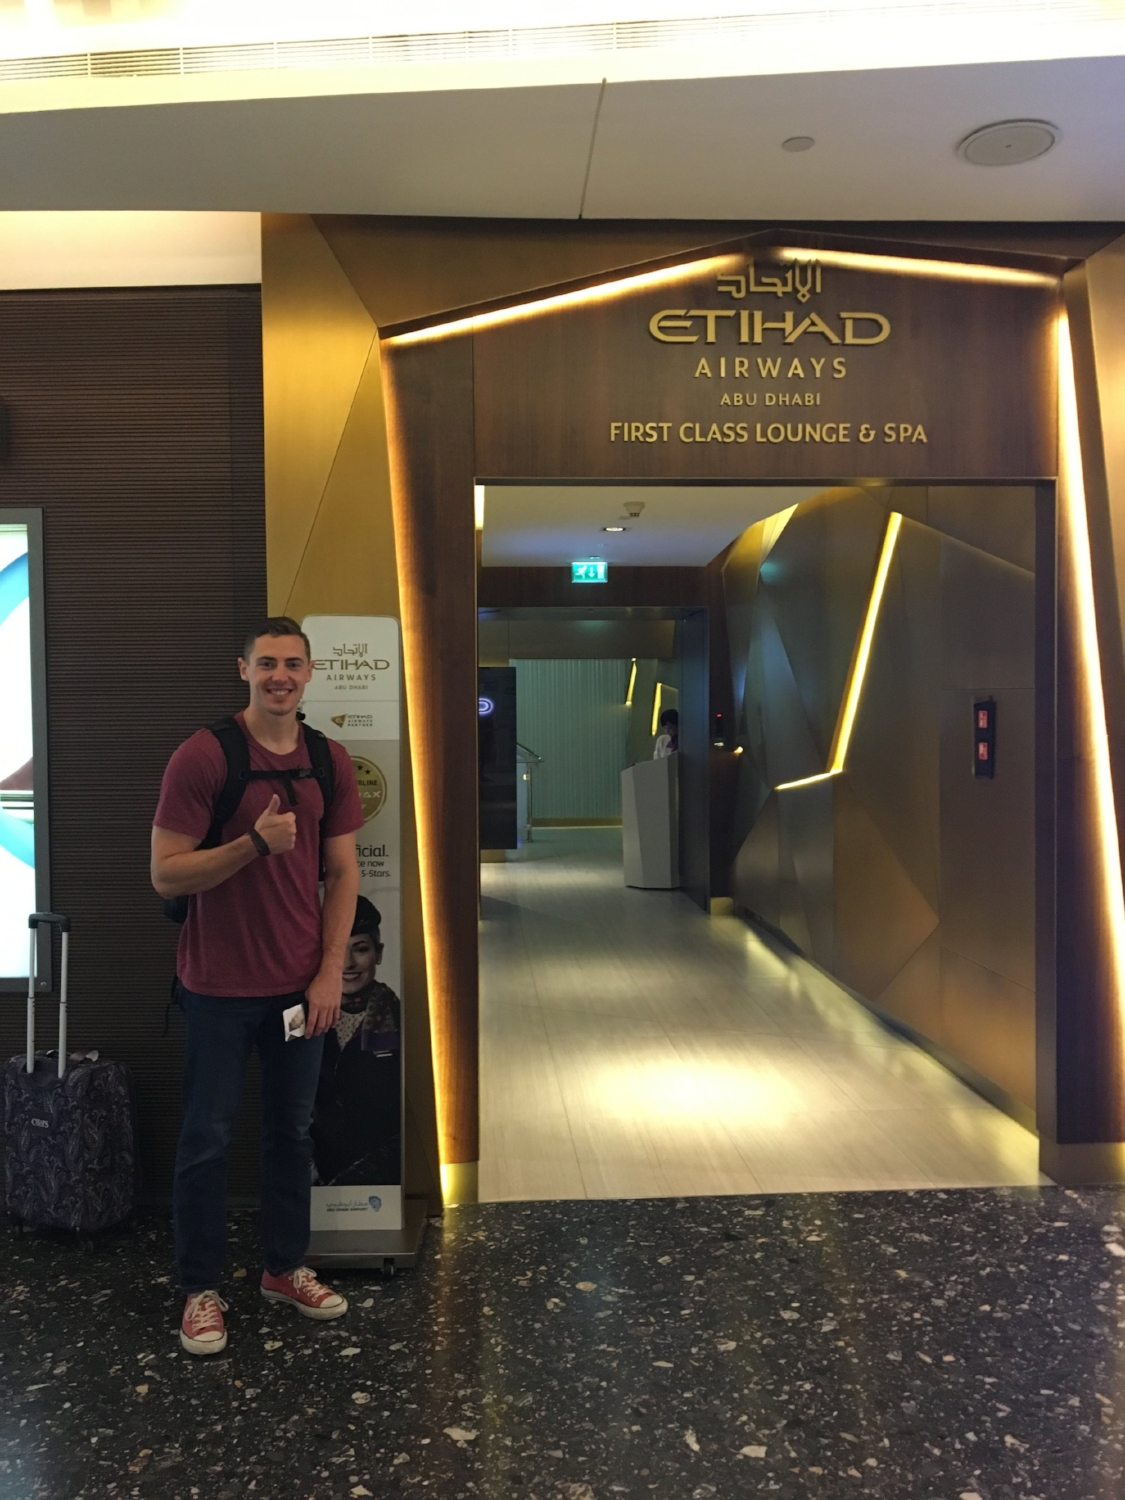 STOKED TO VISIT THE ETIHAD FIRST CLASS LOUNGE